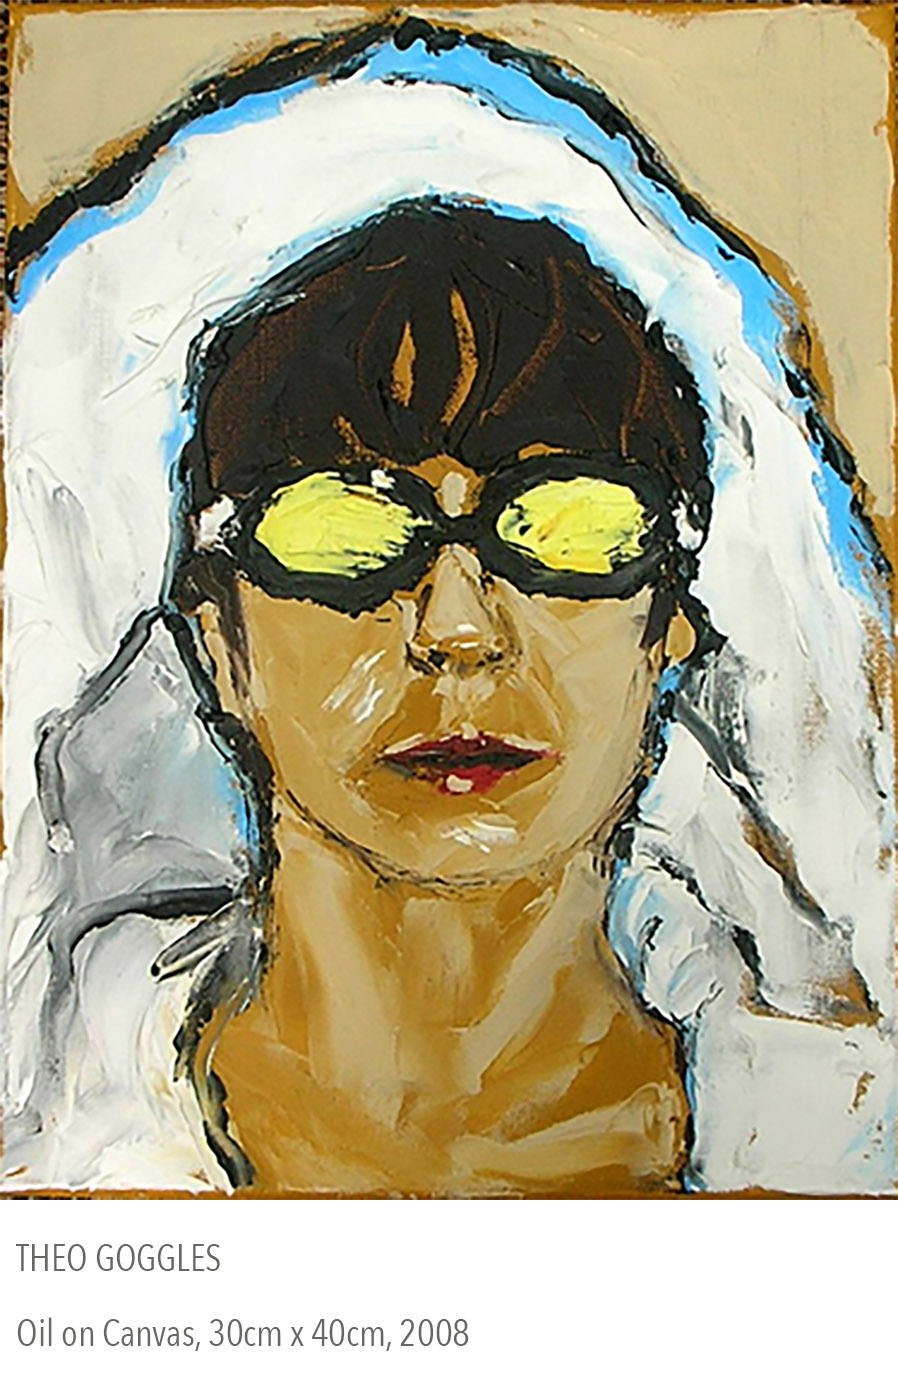 2008 oil painting called Theo Goggles